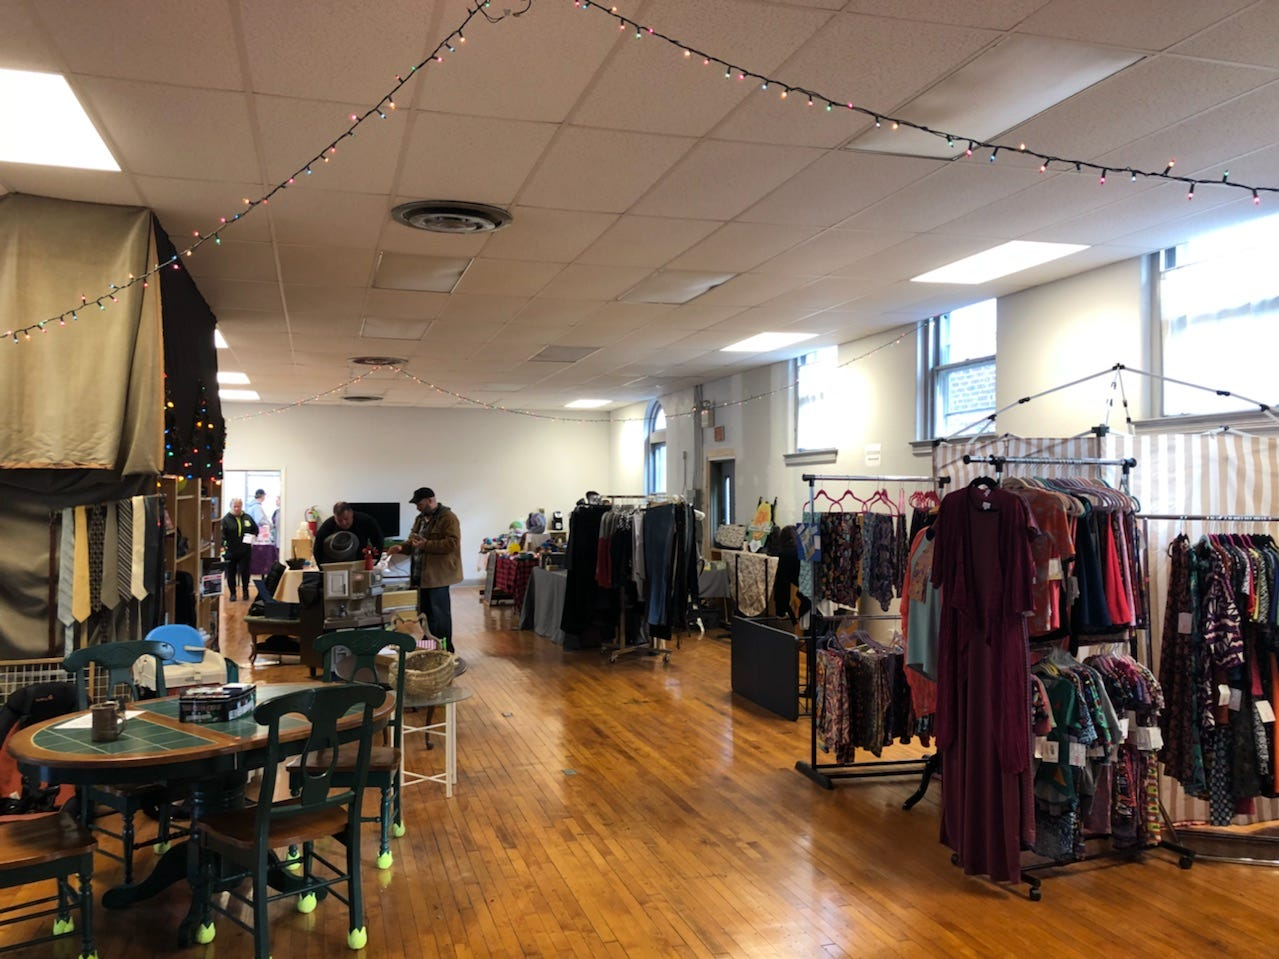 The old post office in Merchantville is being used as a pop-up space for local makers and retailers.